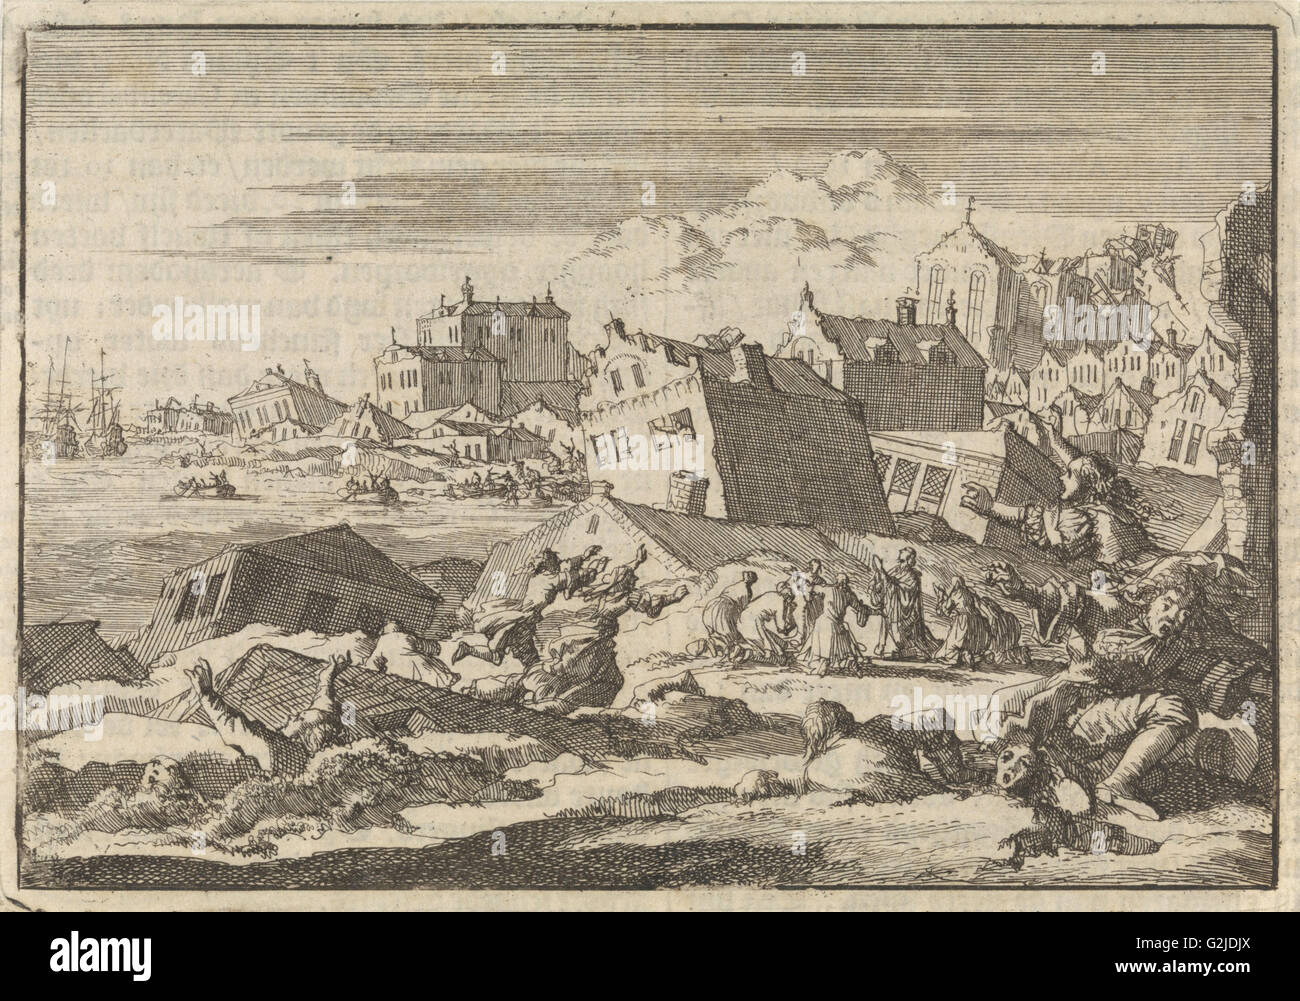 Earthquake in Jamaica where the city Port Royal is destroyed, 1615, Jan  Luyken, Pieter van der Aa I, 1698